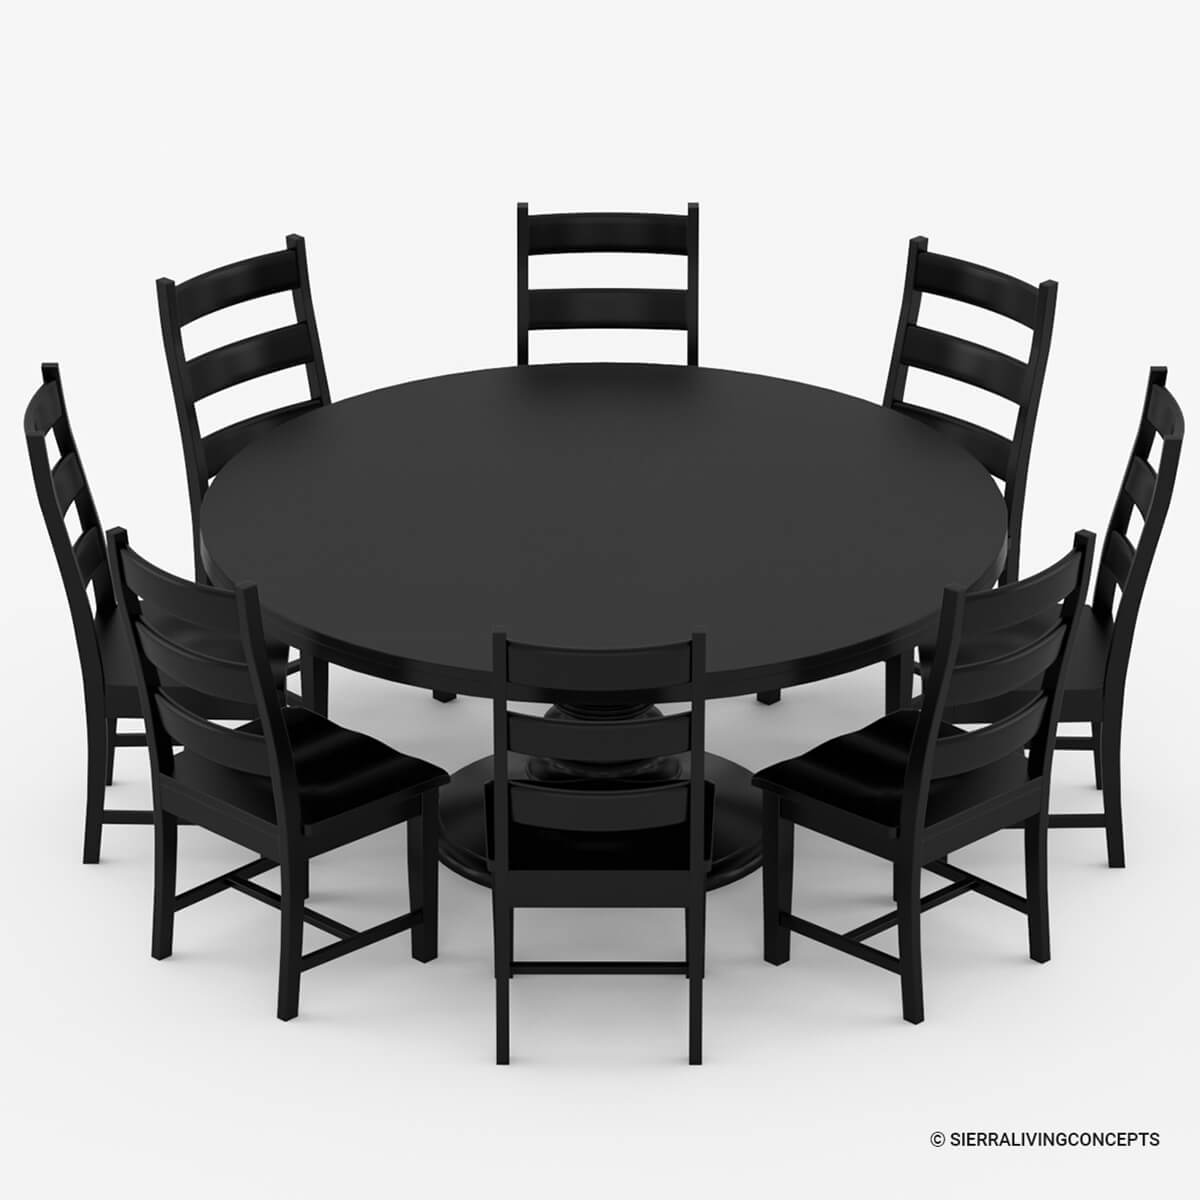 Nottingham rustic solid wood black round dining room table set for Black dining table with leaf